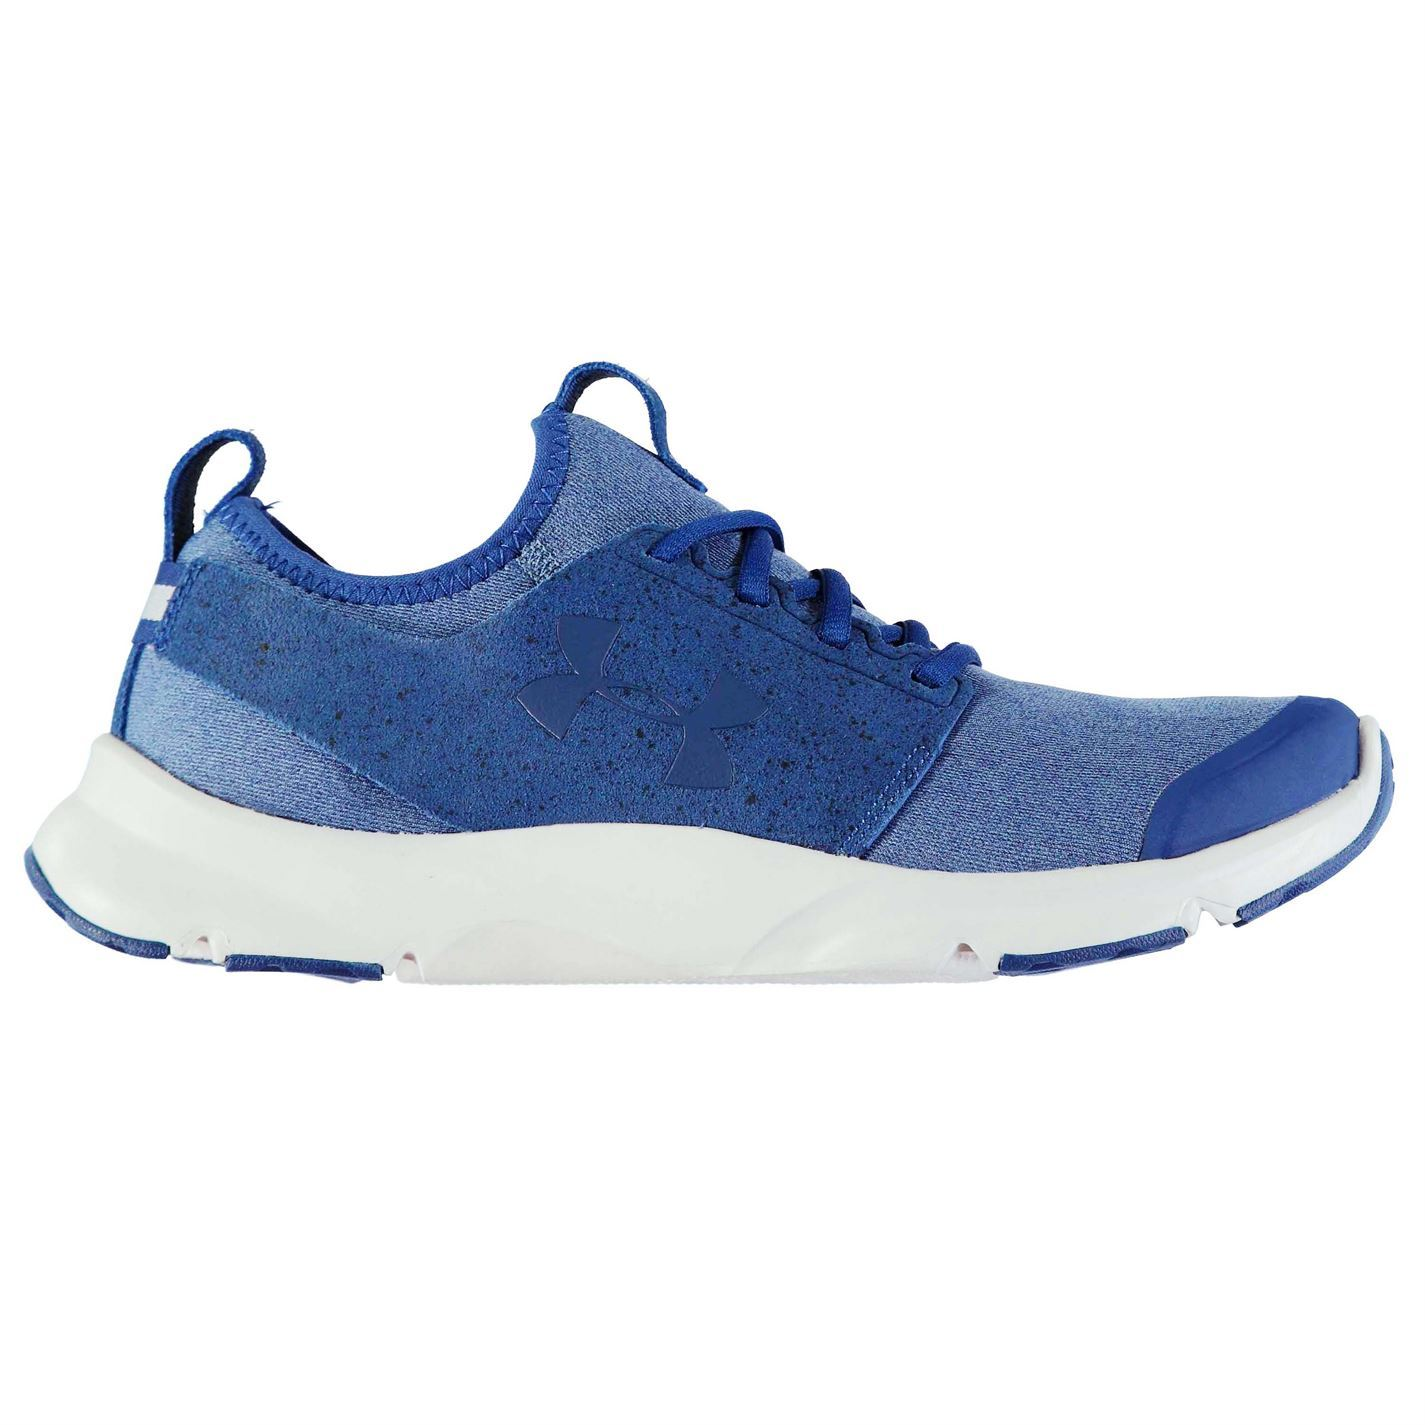 Under Armour  Footwear Uomo Gents Drift Trainers Schuhes Footwear  Laces Fastened edacc4